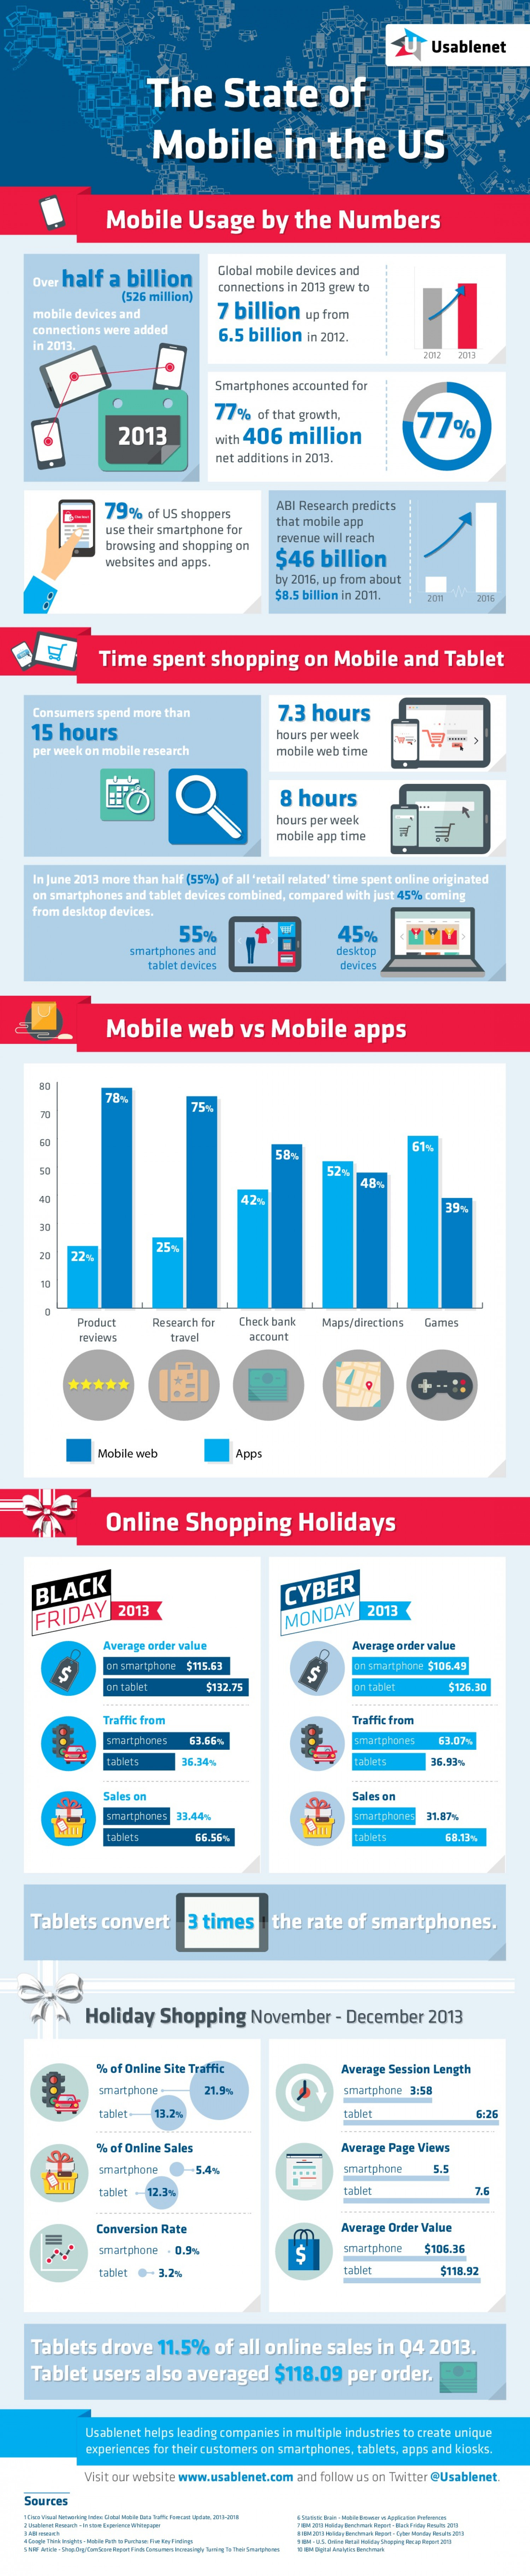 The State of Mobile in the US Infographic